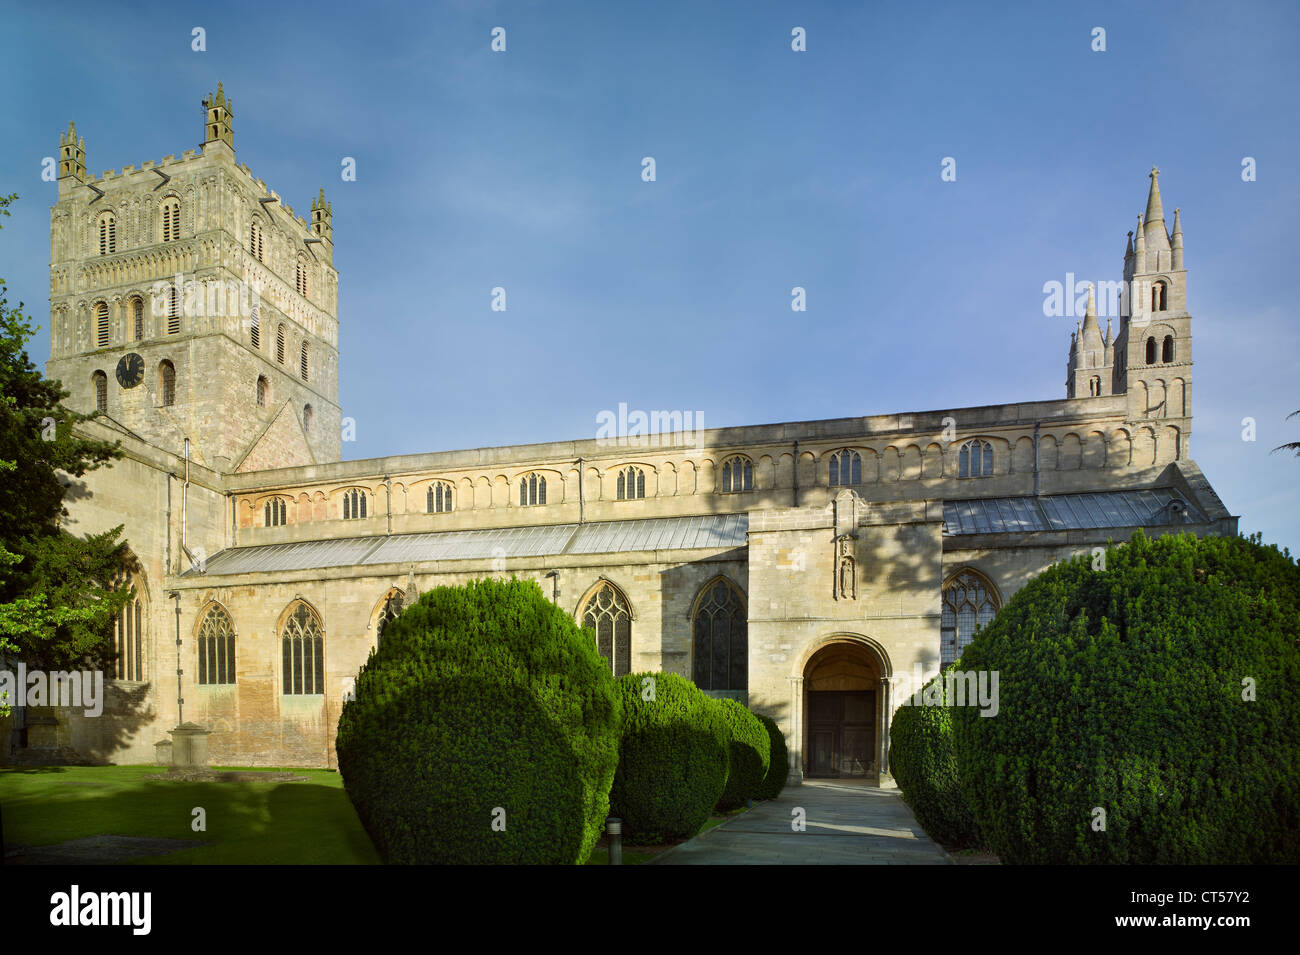 Tewkesbury Abbey aus Norden, normannische Architektur Stockbild